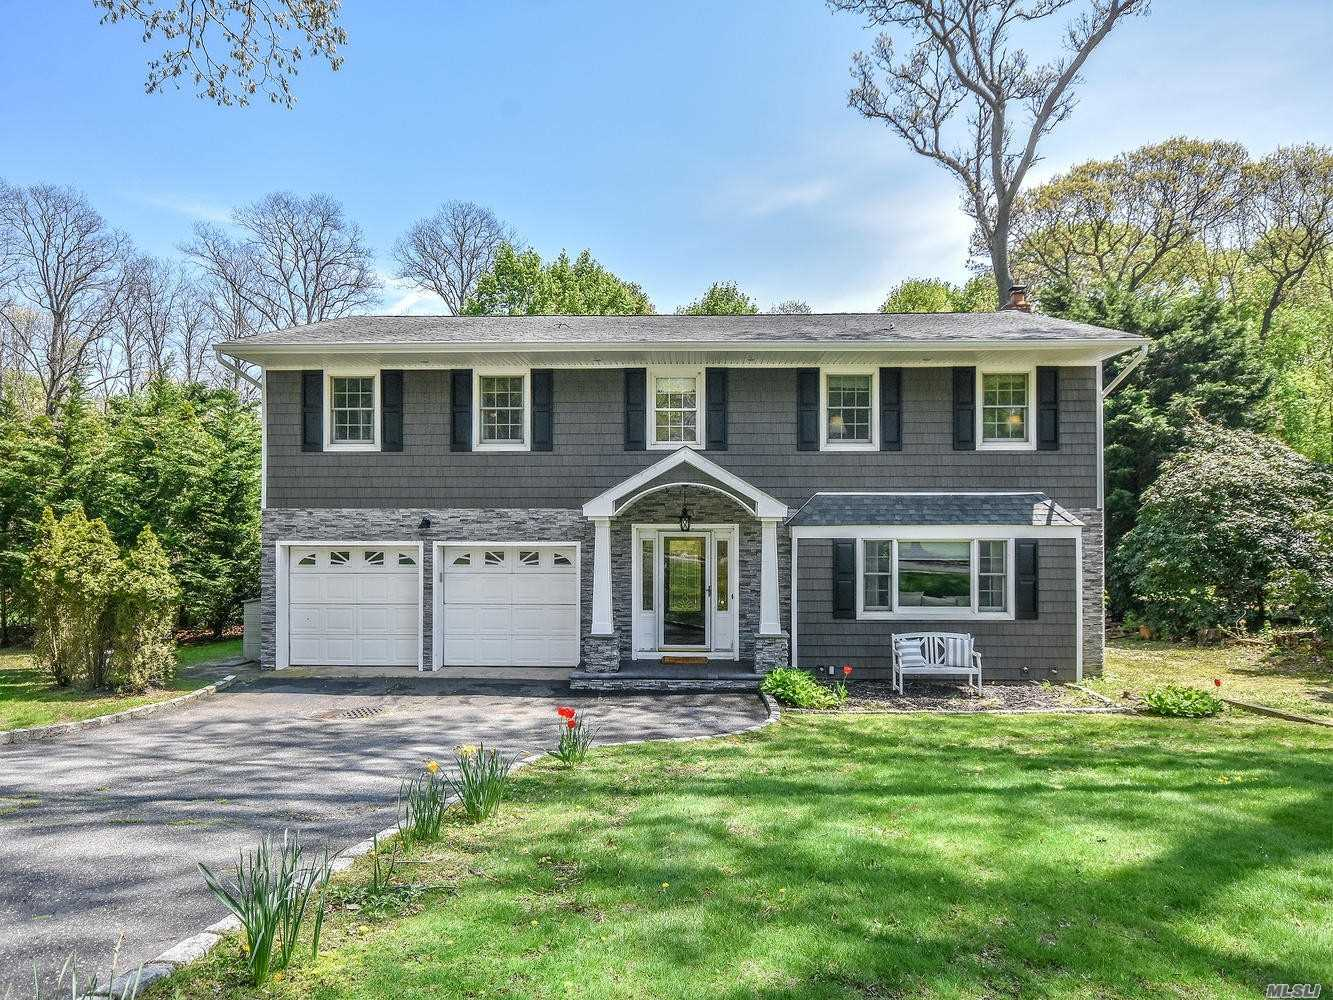 Stunning Brookfield Colonial on a quiet, tree-lined street in desirable Charter Oaks. Mid-block location backs to private woods. New Stone fireplace with remote start, new boiler, new siding/gutters, remodeled granite kitchen w/SS appliances and radiant heat, refinished oak floors, updated Anderson and Pella windows and beautiful sun-room. So gorgeous. Won't last!